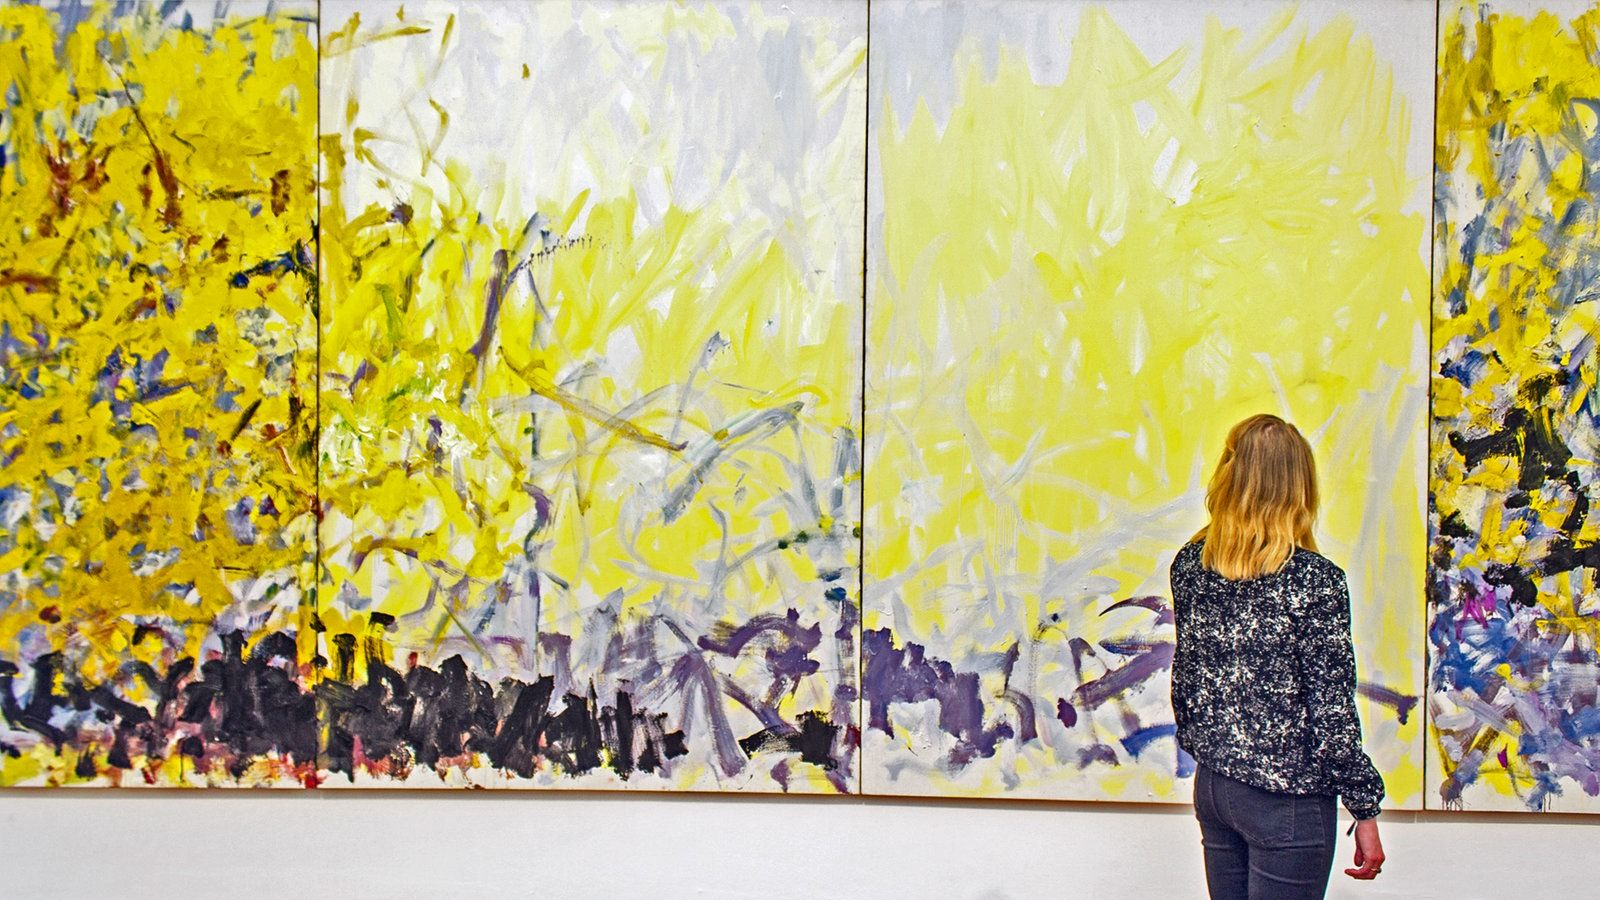 joan-mitchell-museum-ludwig-120~_v-gseagaleriexl.jpg (1600×900)